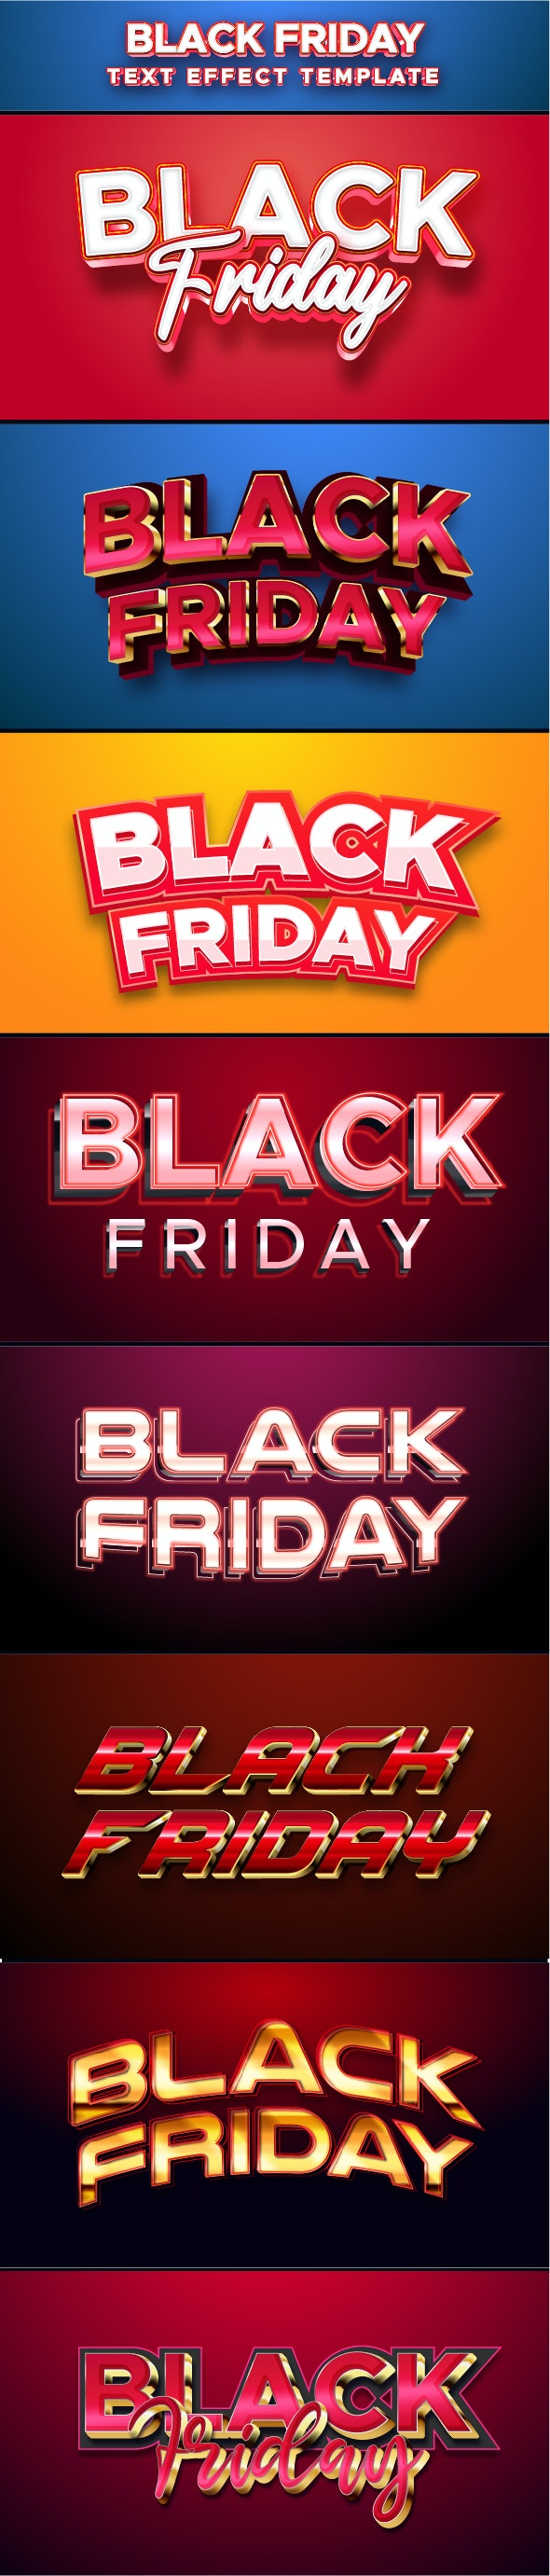 Black Friday Text Effect for Illustrator - Styles Illustrator